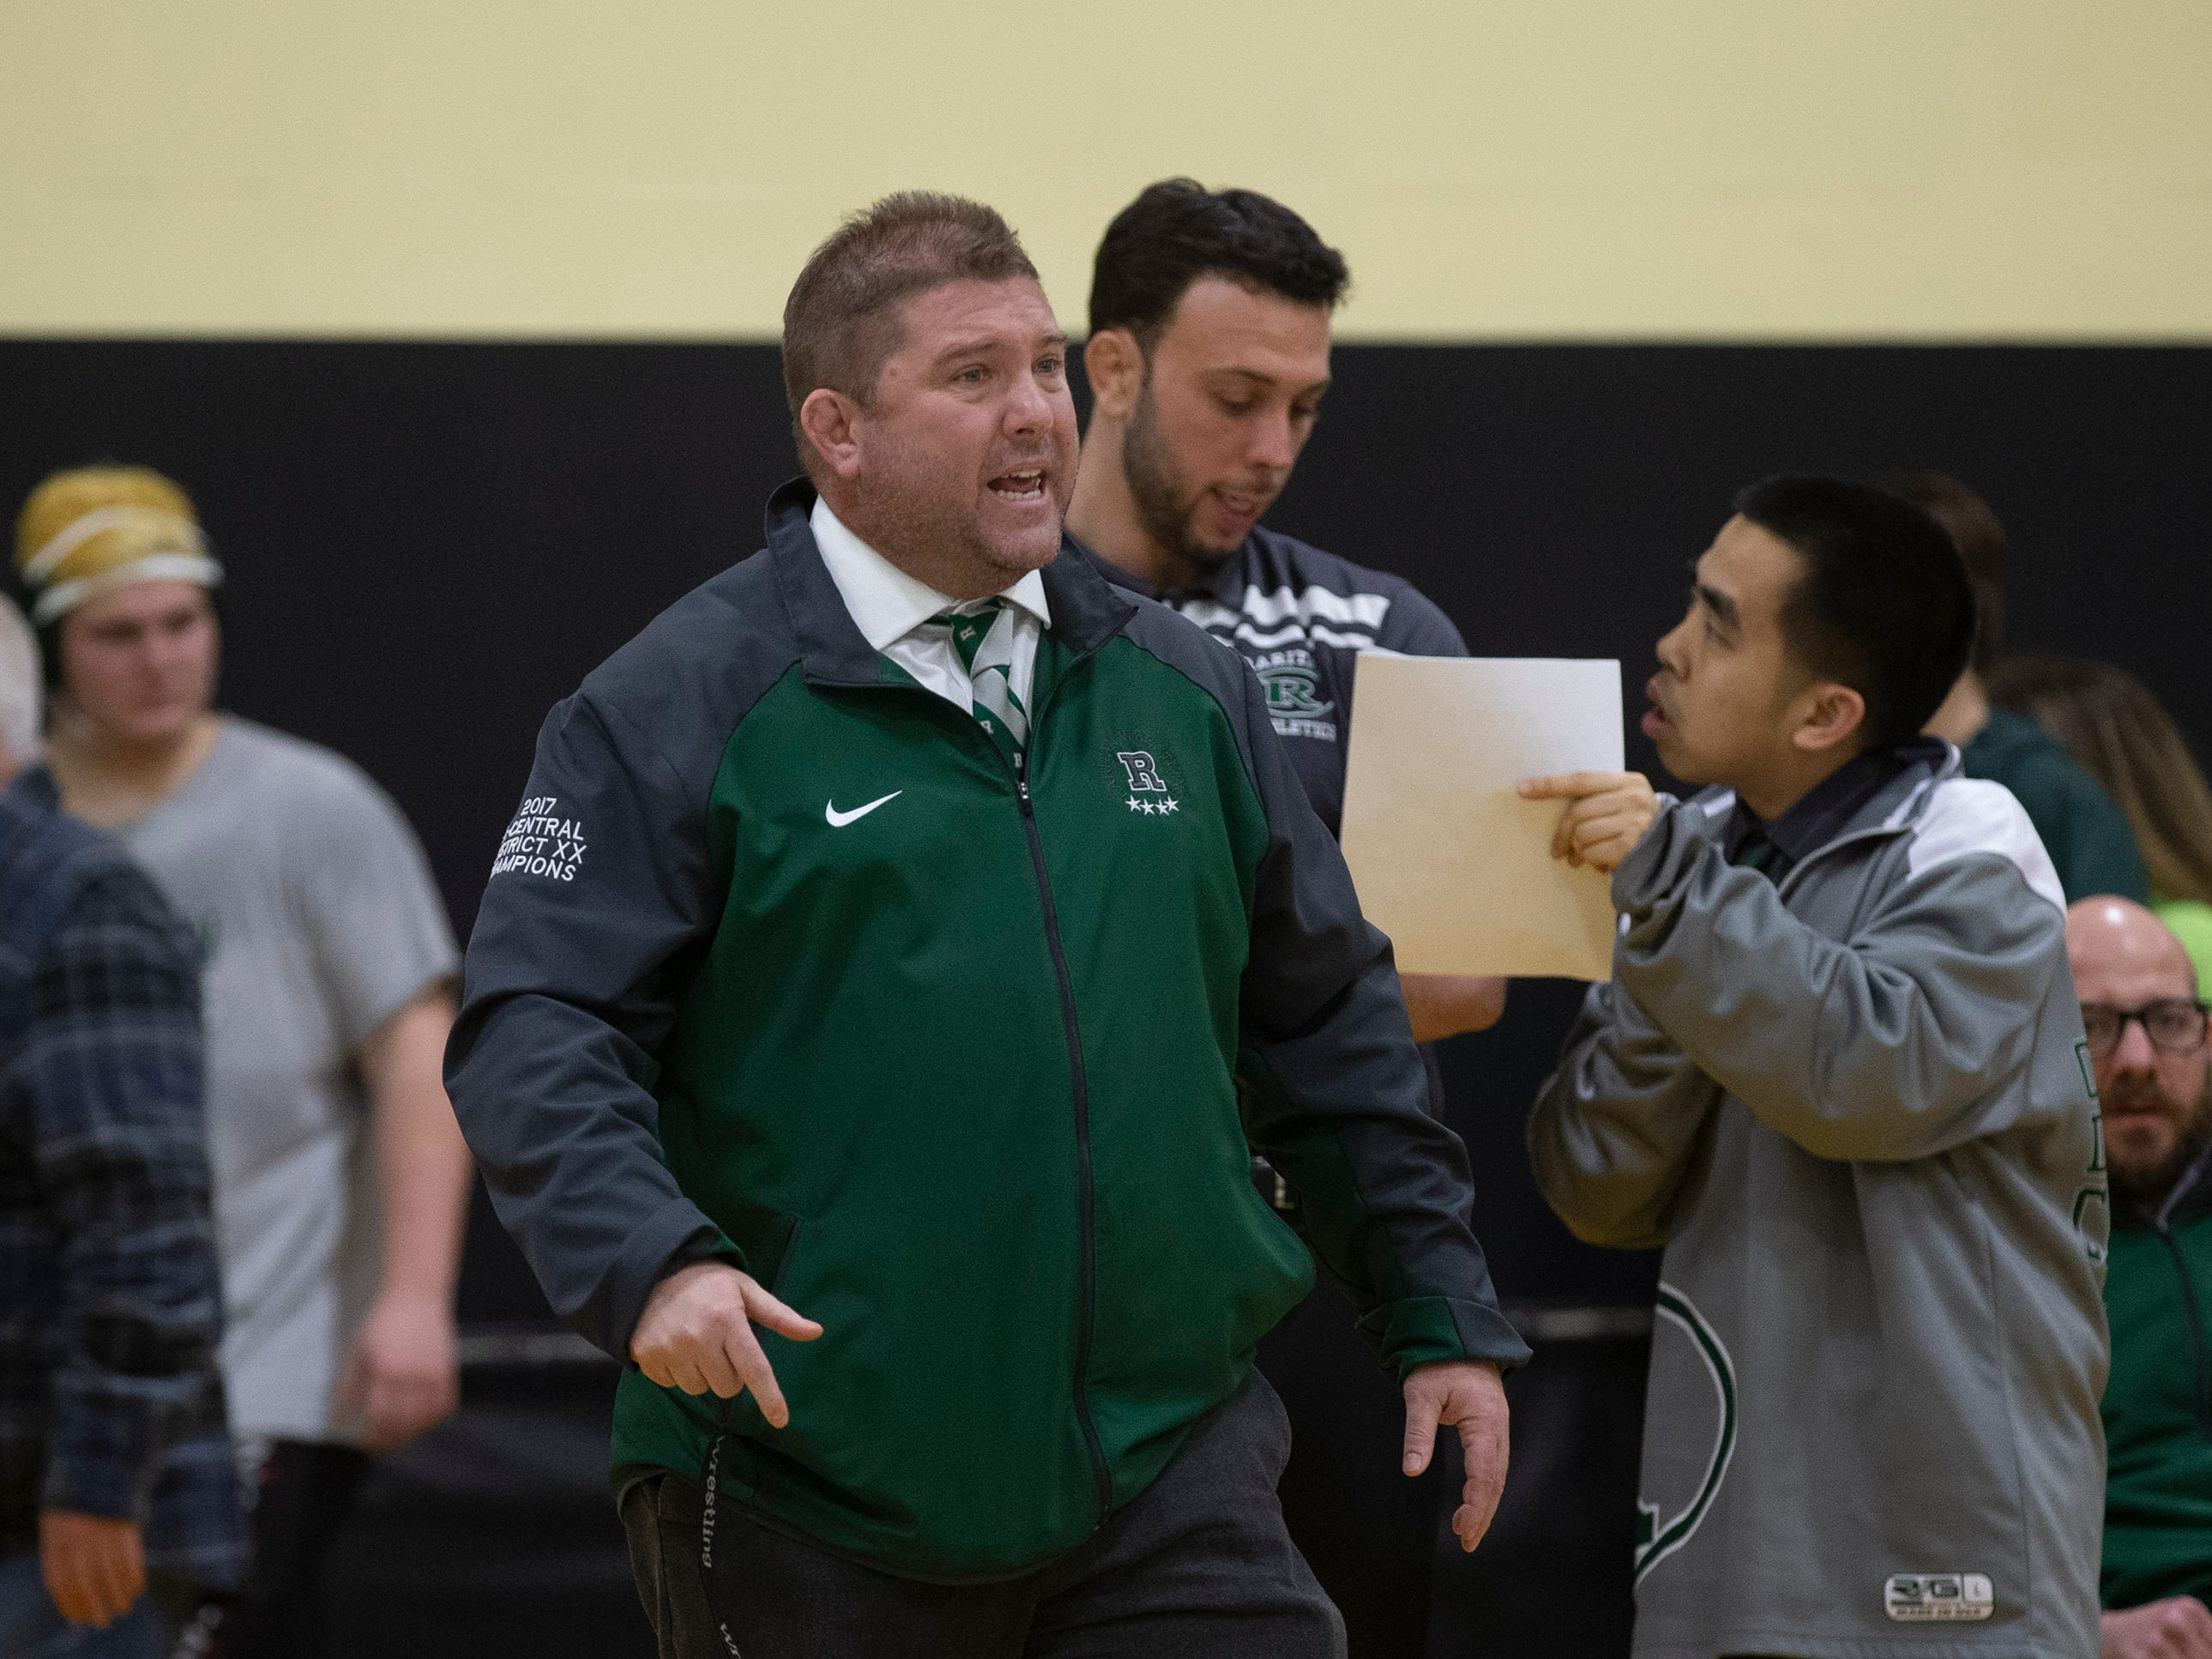 Raritan Wrestling Coach Rob Nucci. Raritan Wrestling defeats St John Vianney in Holmdel, NJ on January 23, 2019.